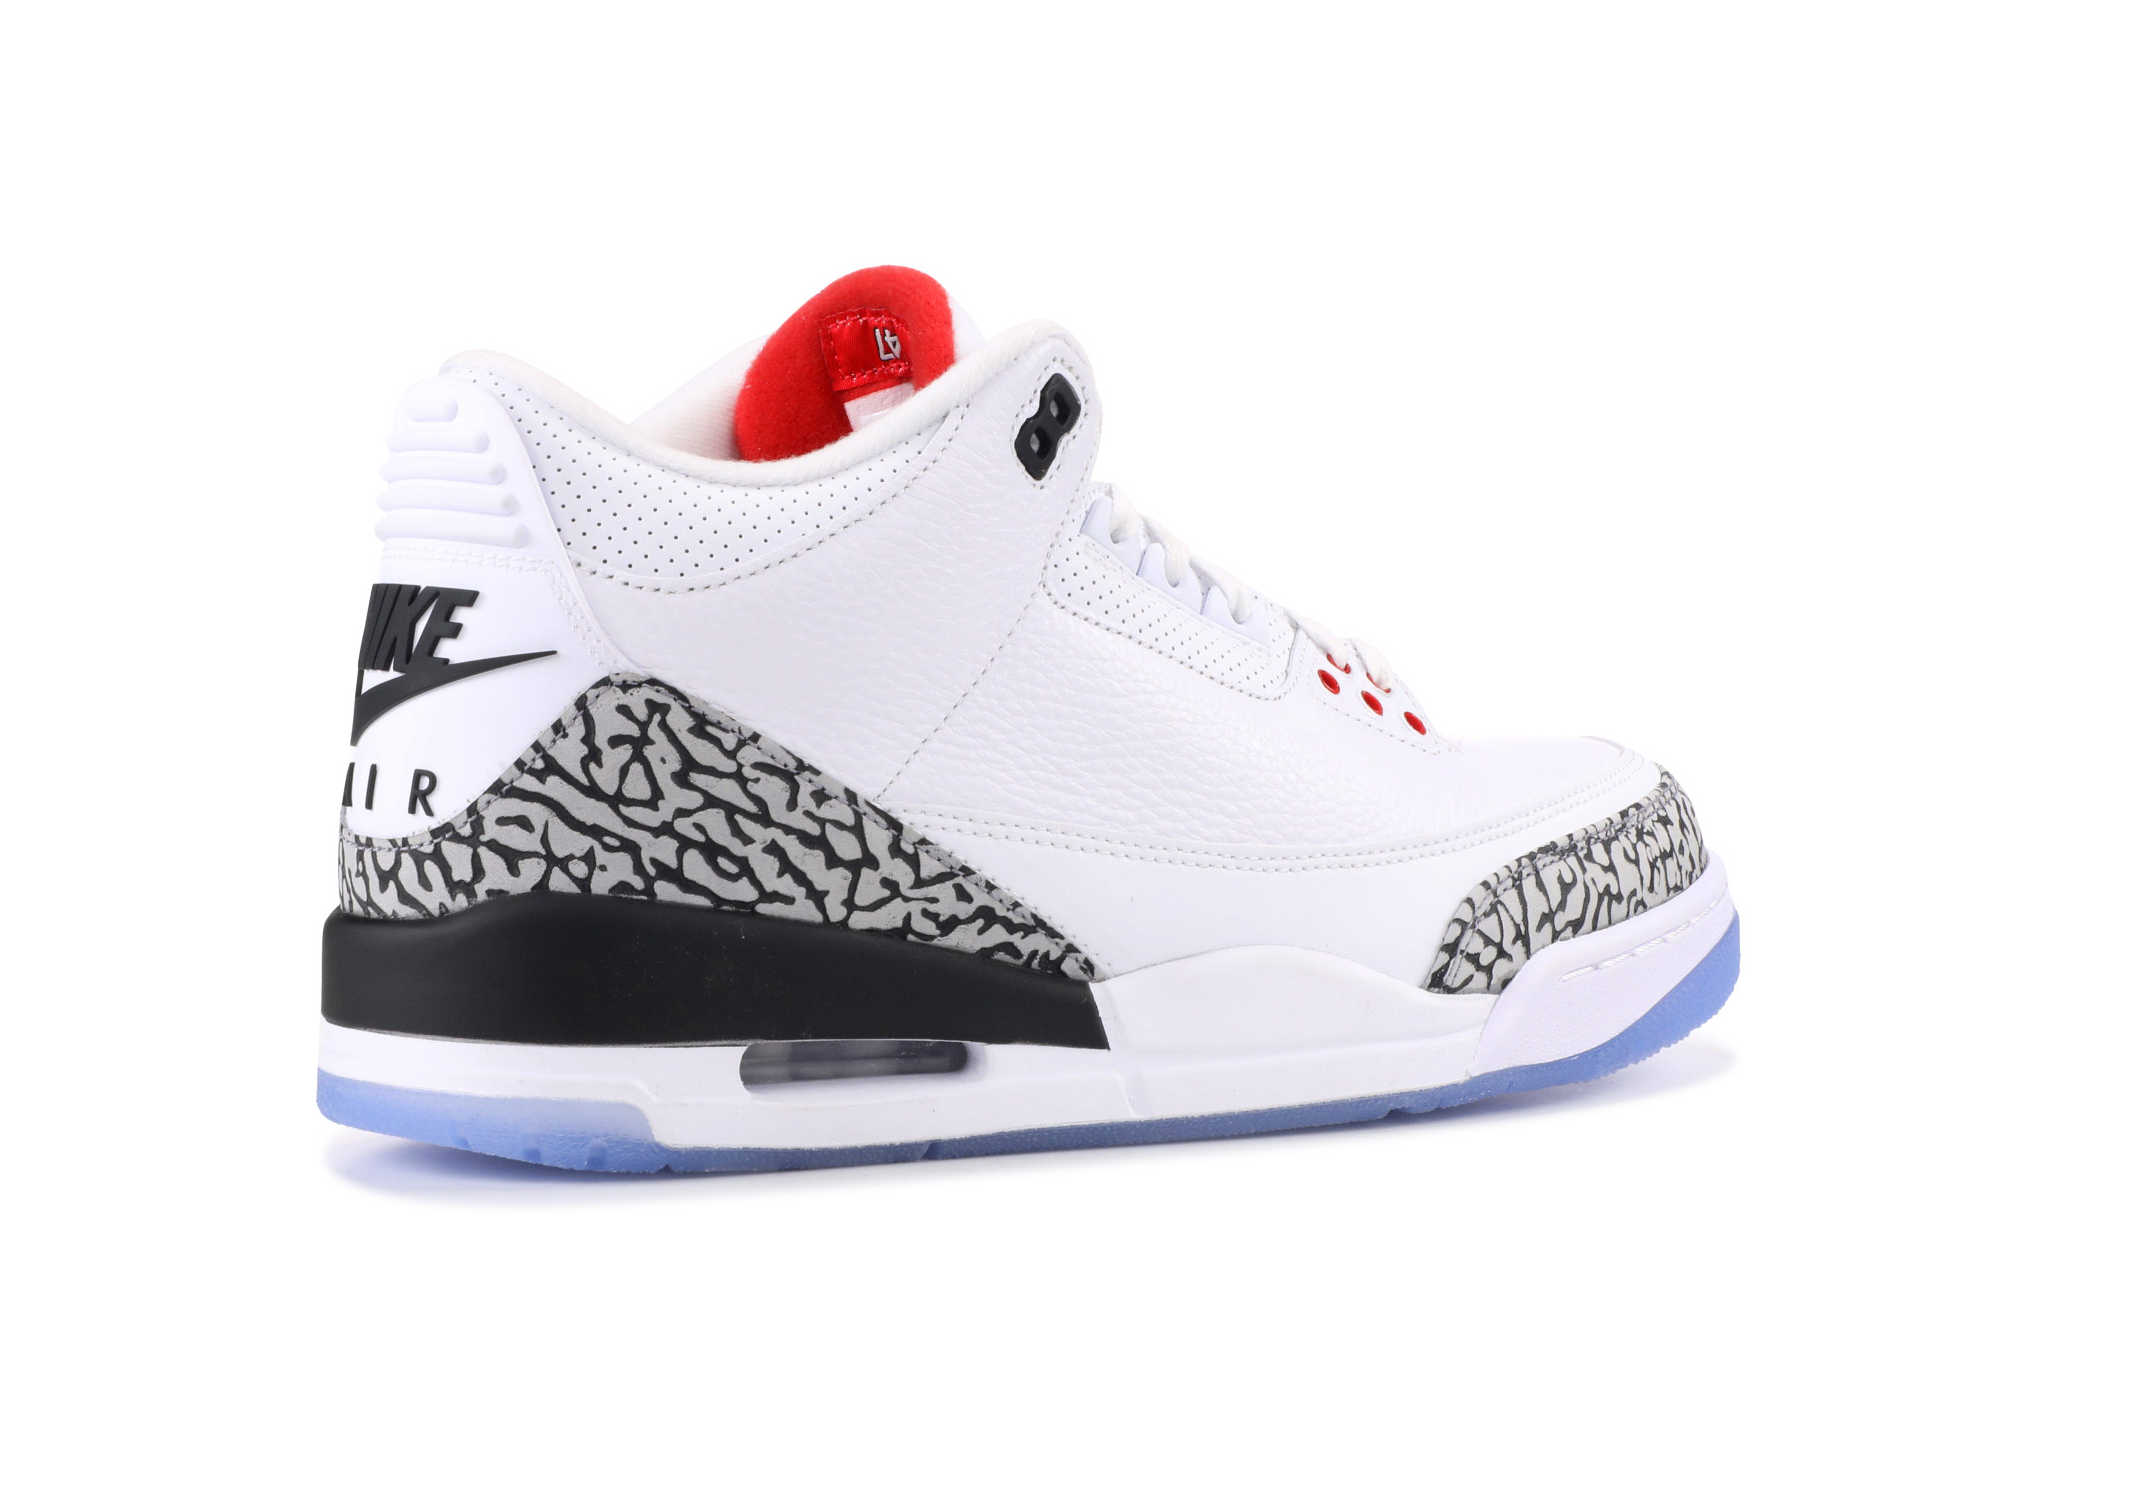 923b45b8c37 Jordan 3 Free Throw Line – Kerimago